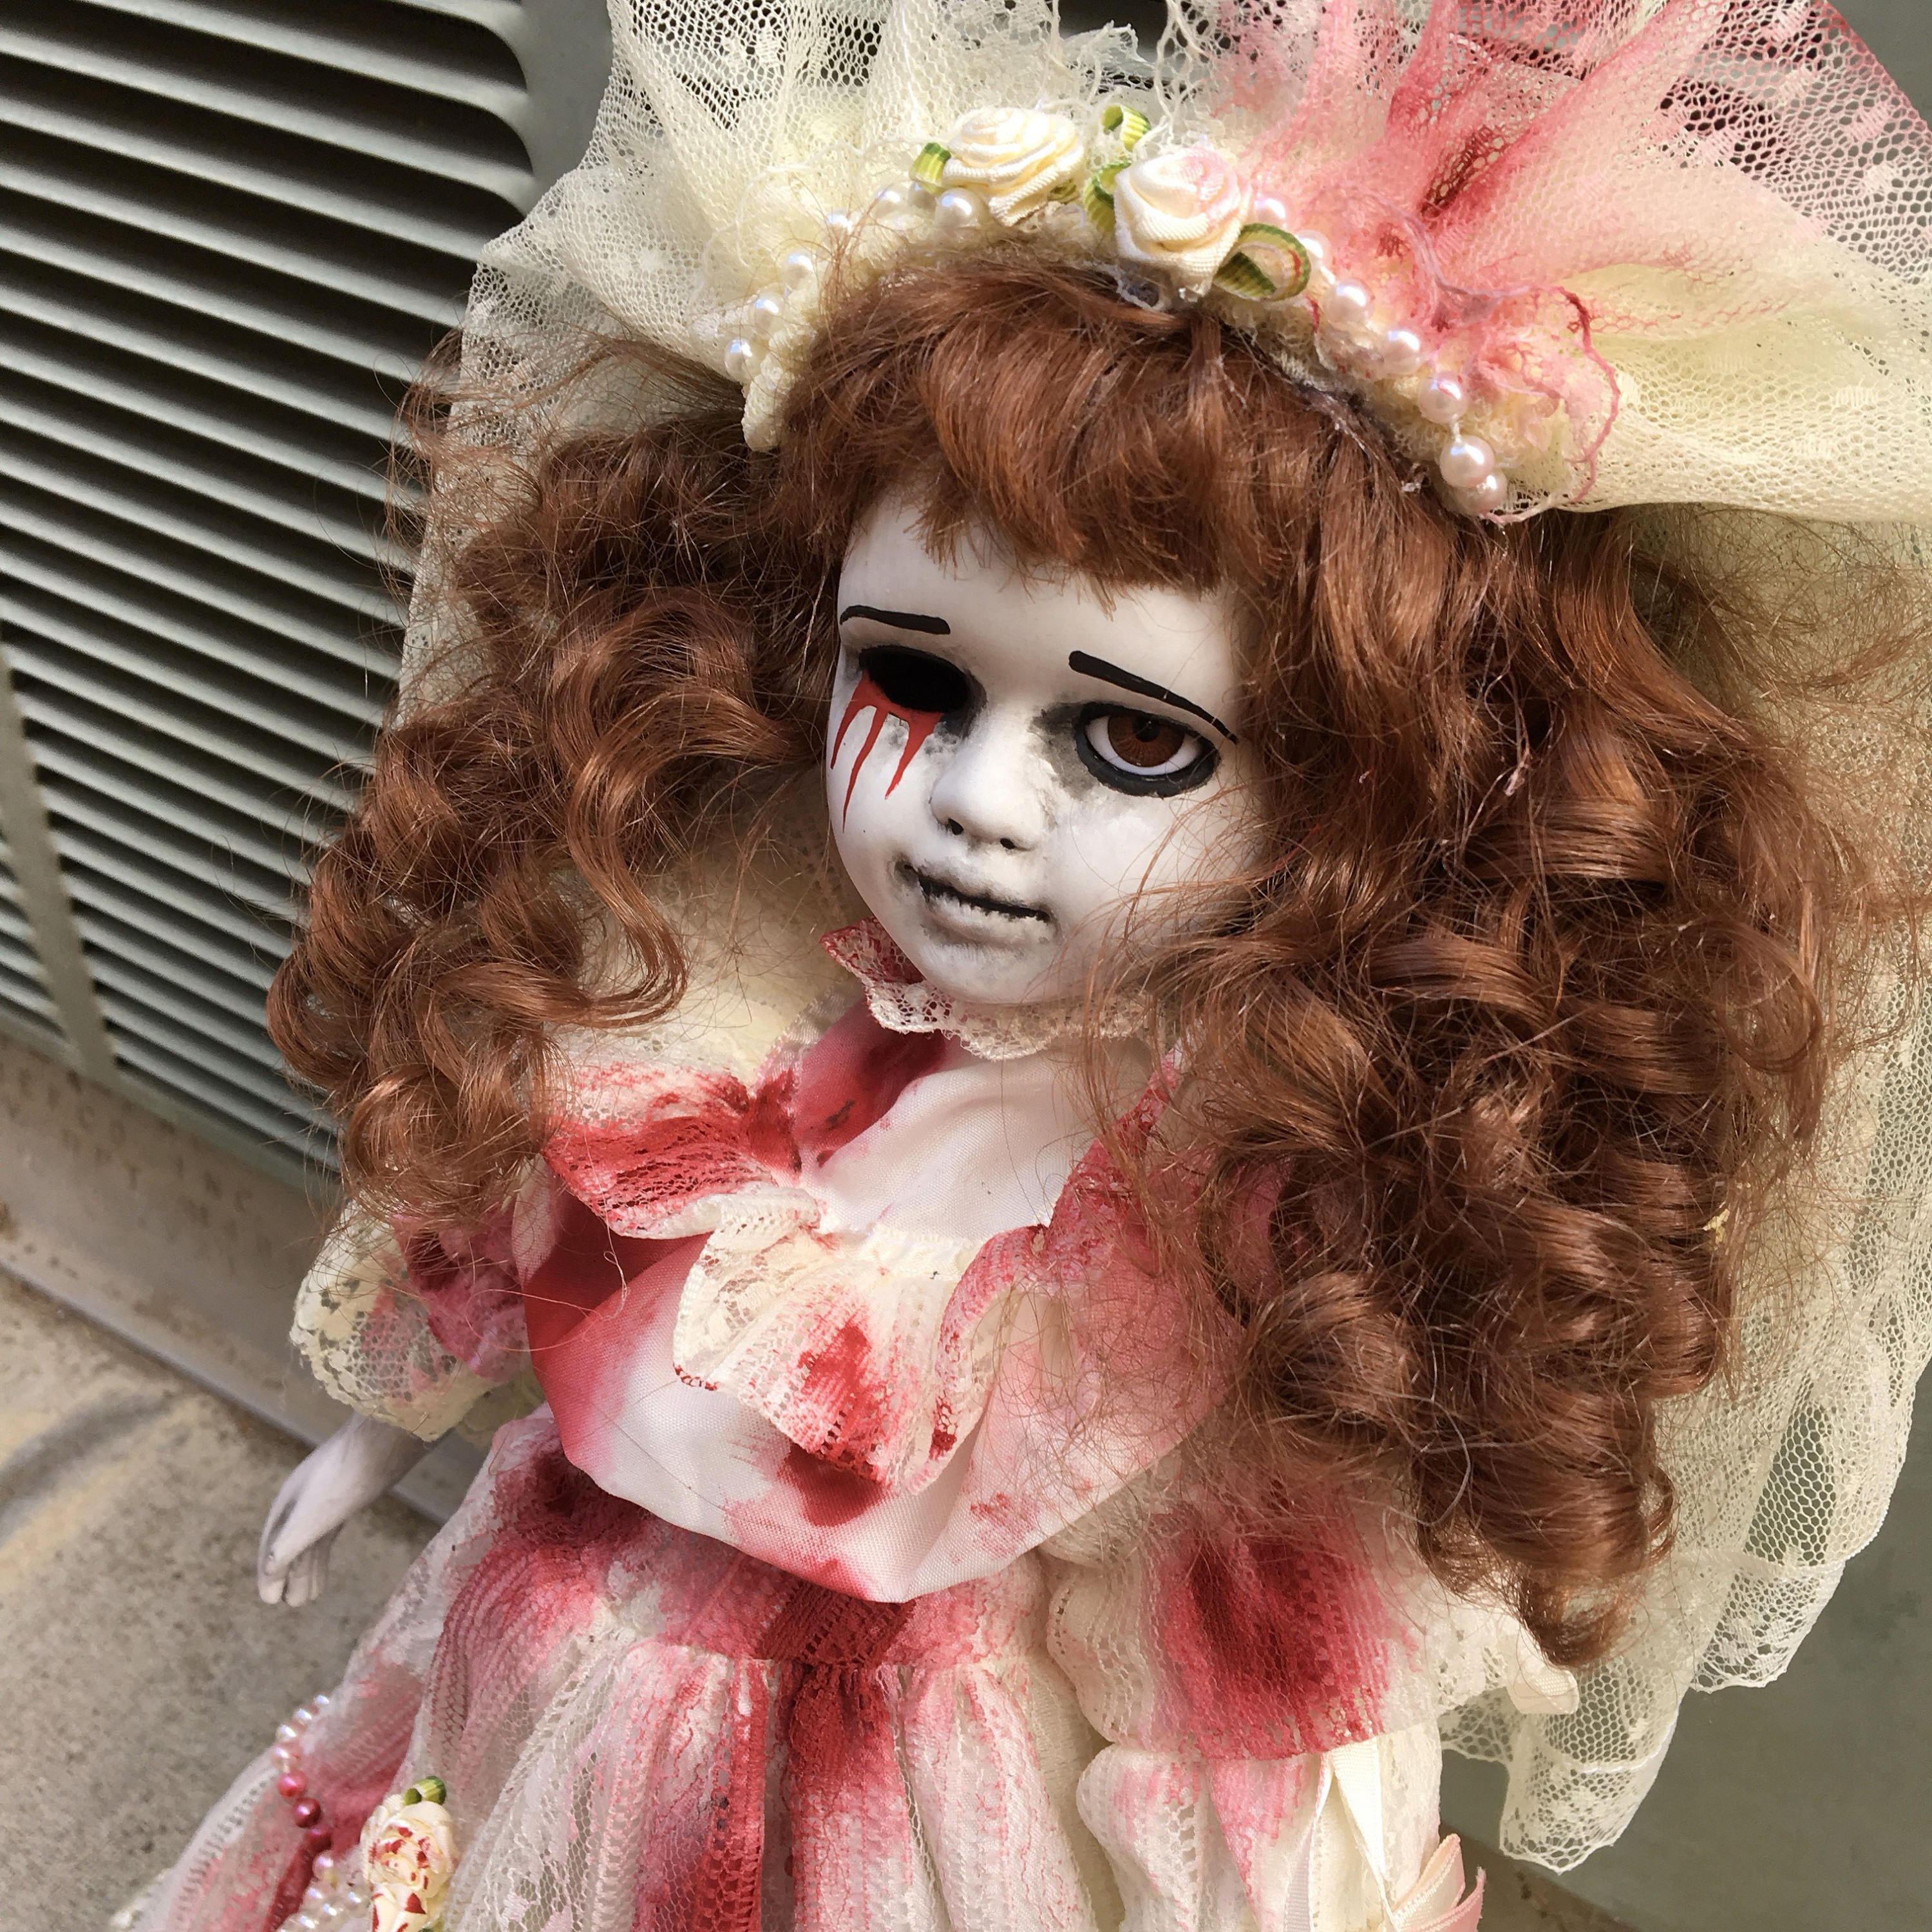 art doll ooak doll halloween doll horror doll creepy doll gothic doll porcelain doll custom doll bride bride doll wedding